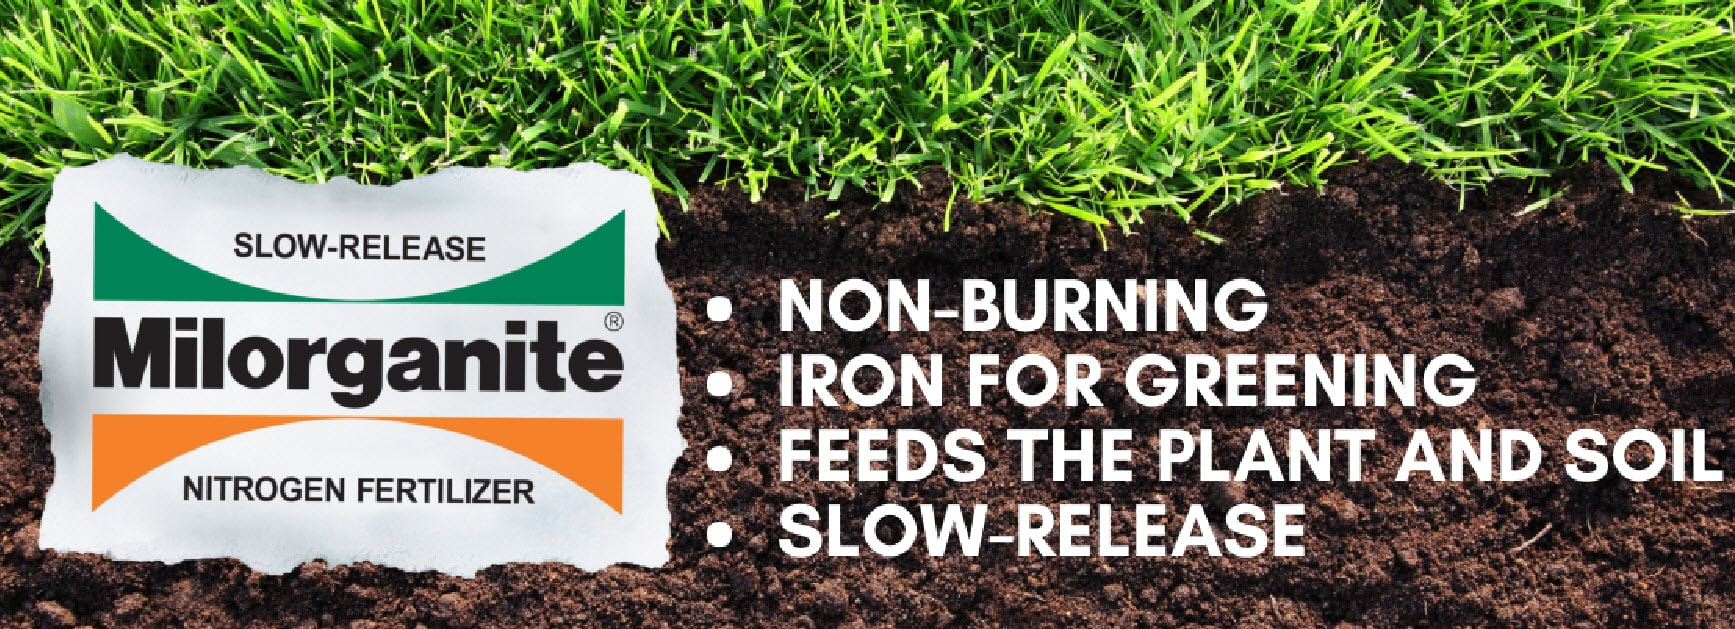 Milorganite fertilizer is made from slow-release nitrogen and feeds for up to ten weeks.